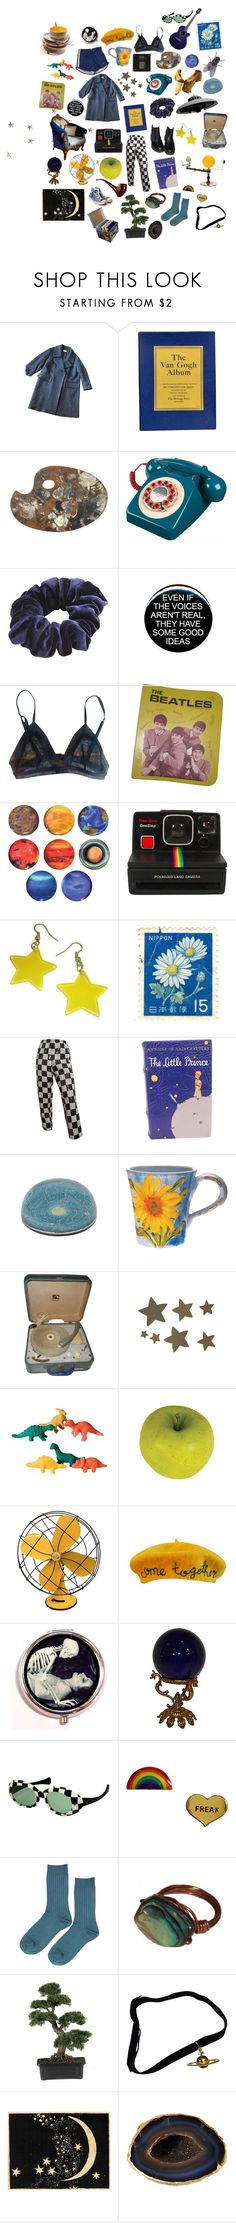 """""""starry night"""" by peachysara ❤ liked on Polyvore featuring Dries Van Noten, Wild Pair, La Perla, Polaroid, Comme des Garçons, Jayson Home, RCA, C.R.A.F.T., Etiquette and Emerson"""